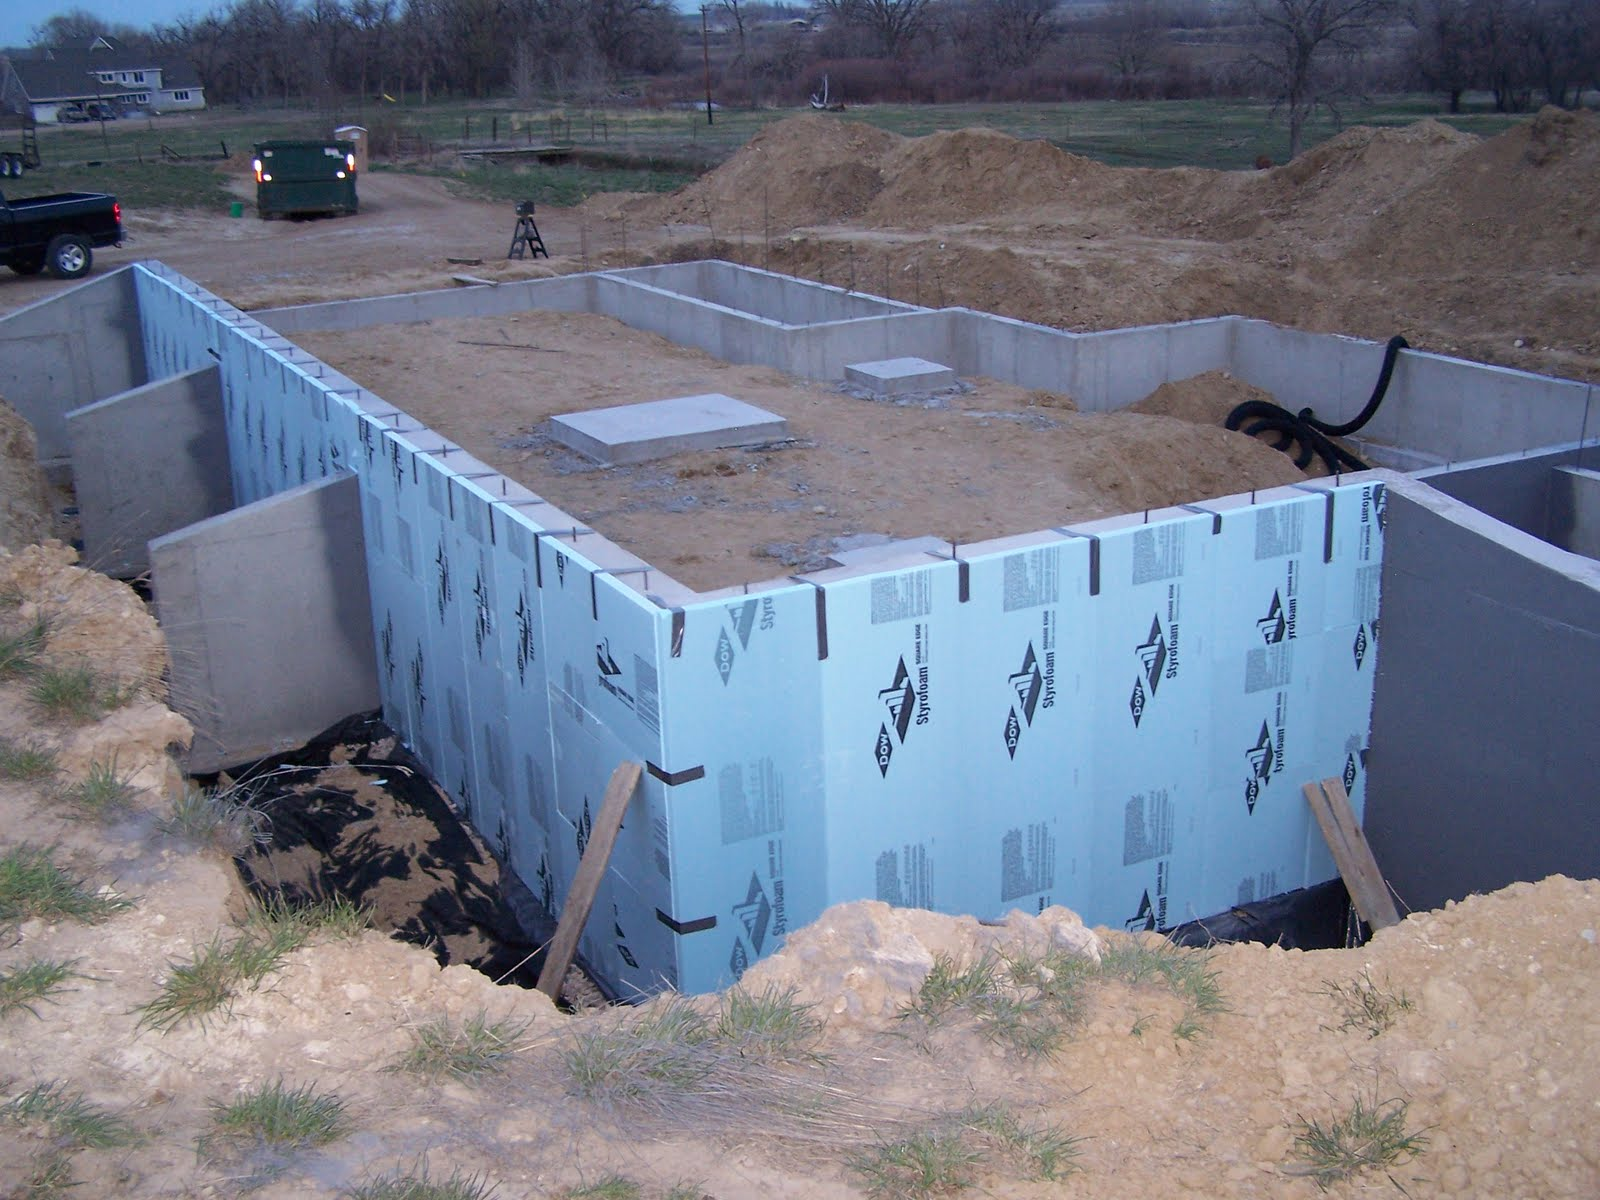 Marvelous Perimeter Drain, Damproofing, And Exterior Wall Insulation